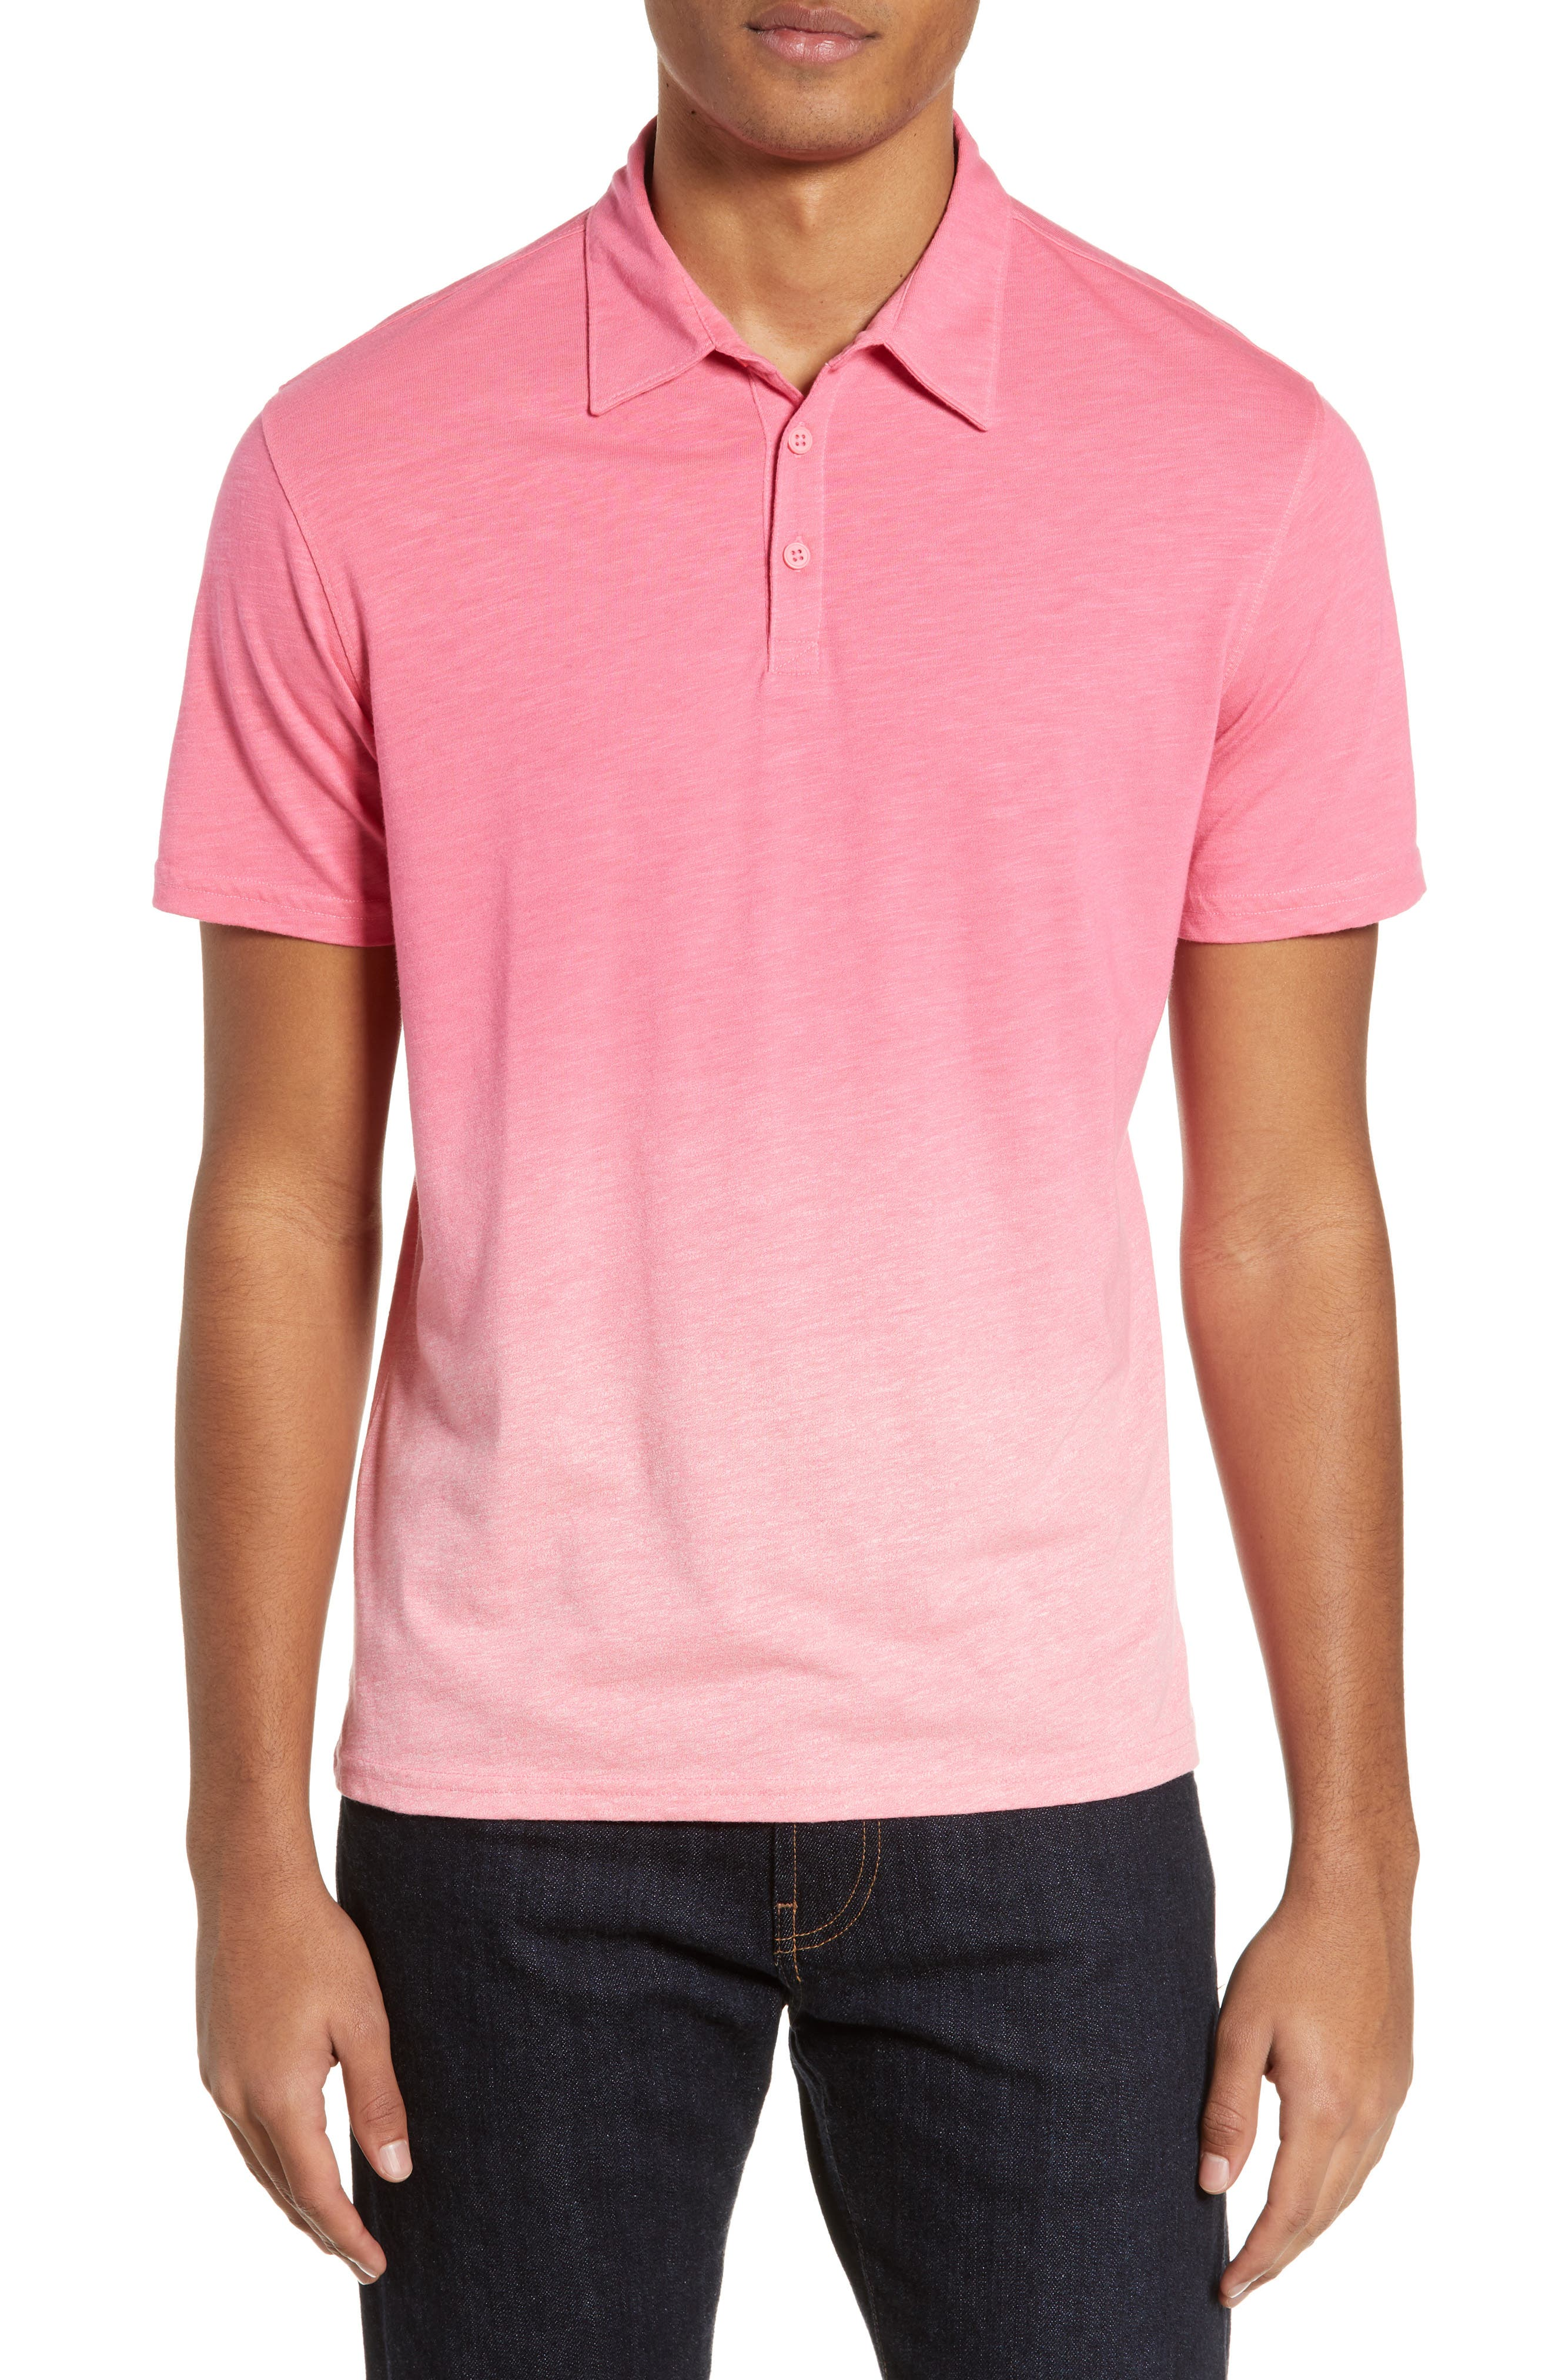 ZACHARY PRELL Shelter Island Dip Dye Polo, Main, color, BRIGHT PINK